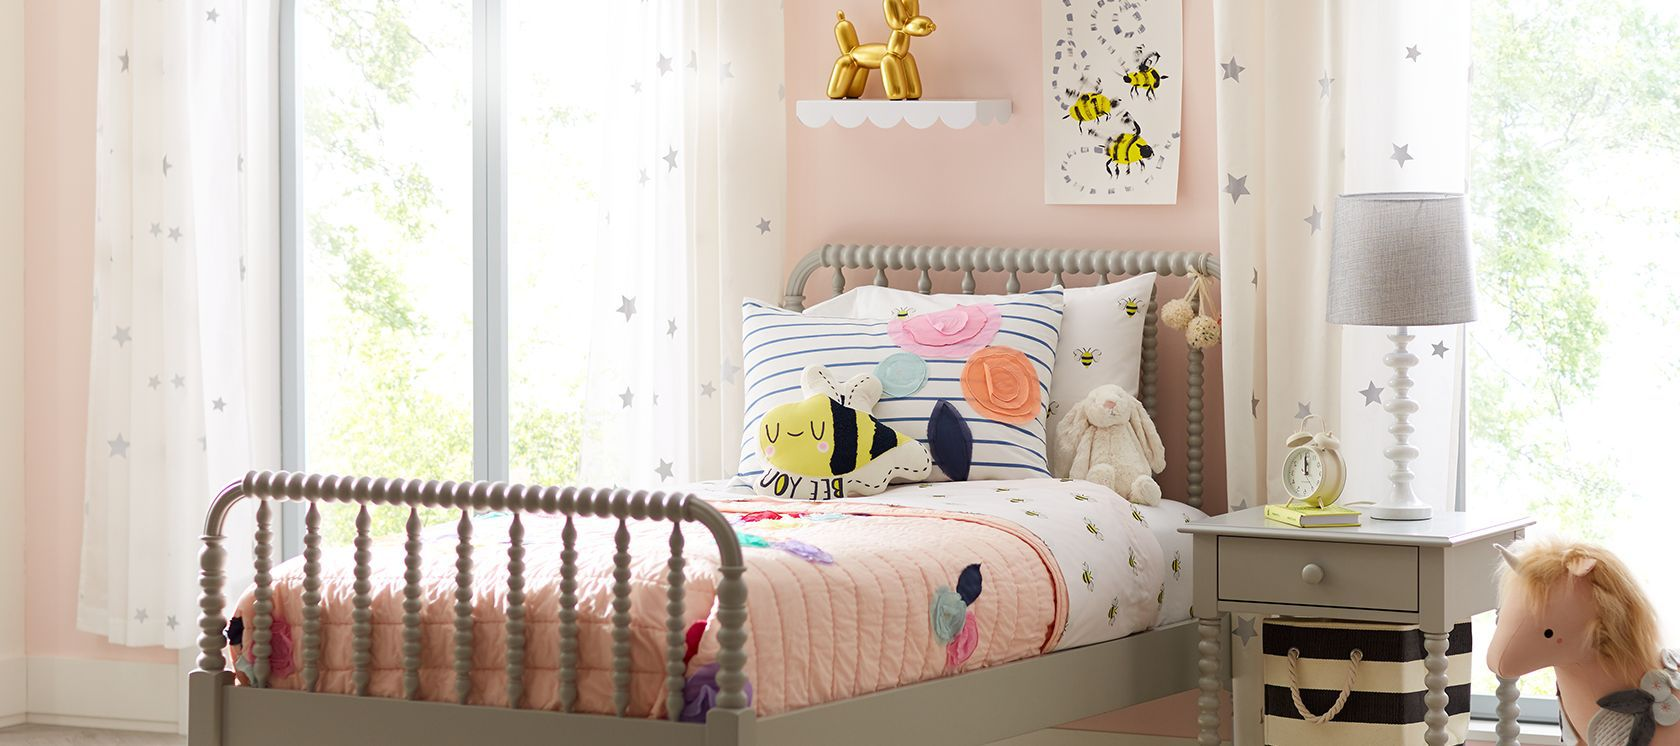 Children S And Kids Room Ideas Designs Inspiration: Room Inspiration & Home Decorating Ideas